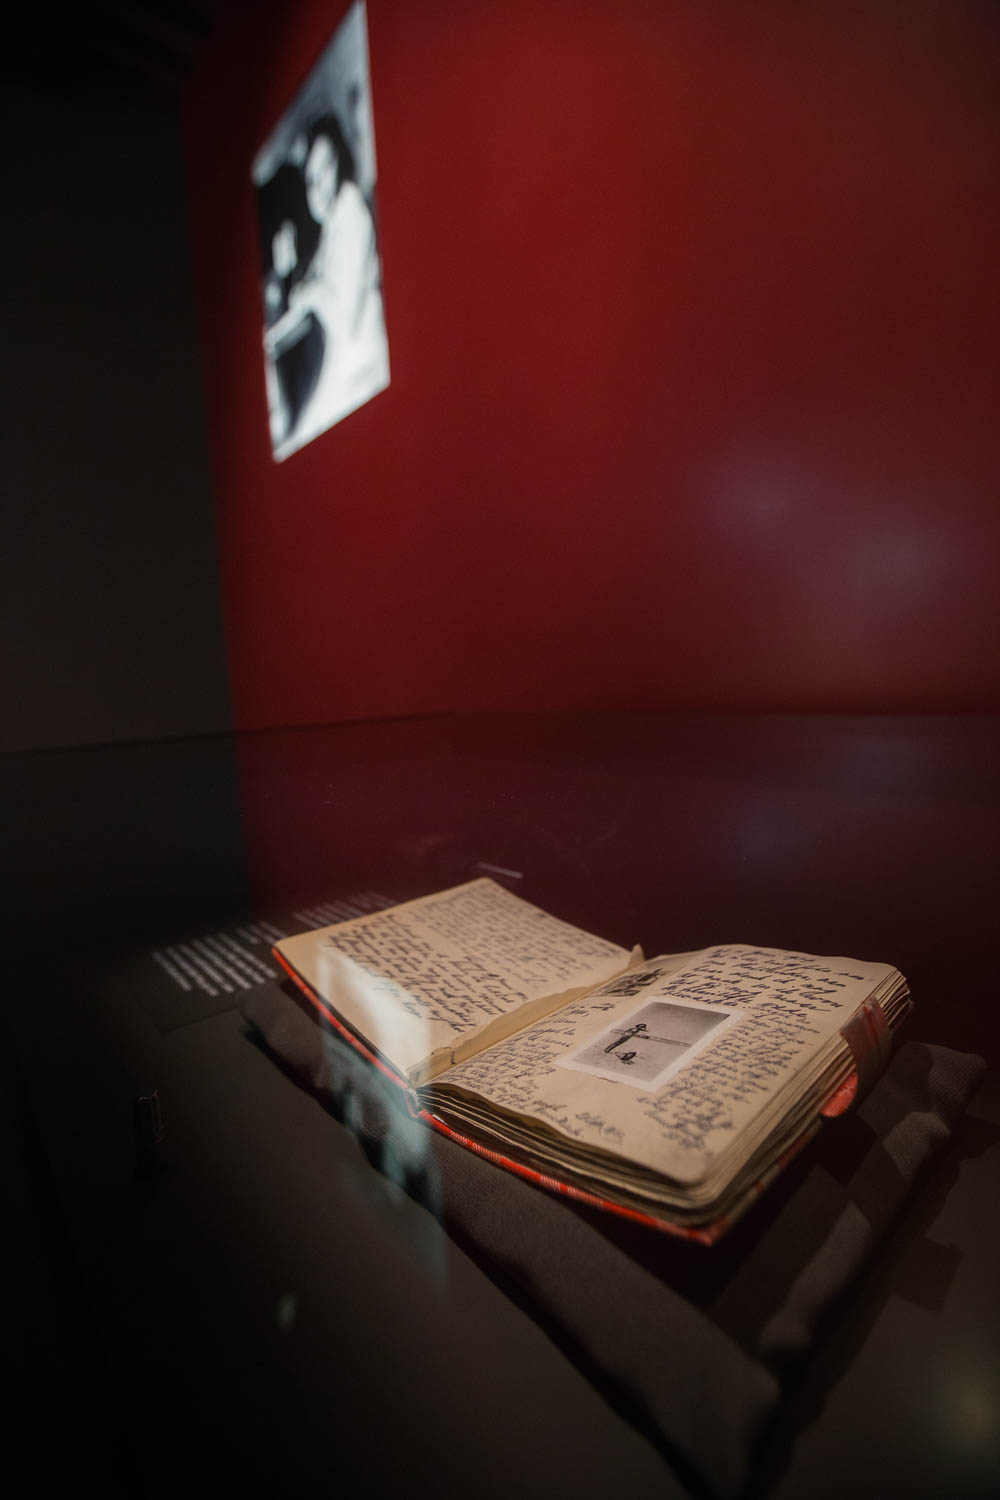 Anne Frank's diary | Tips for visiting the Anne Frank House museum in Amsterdam